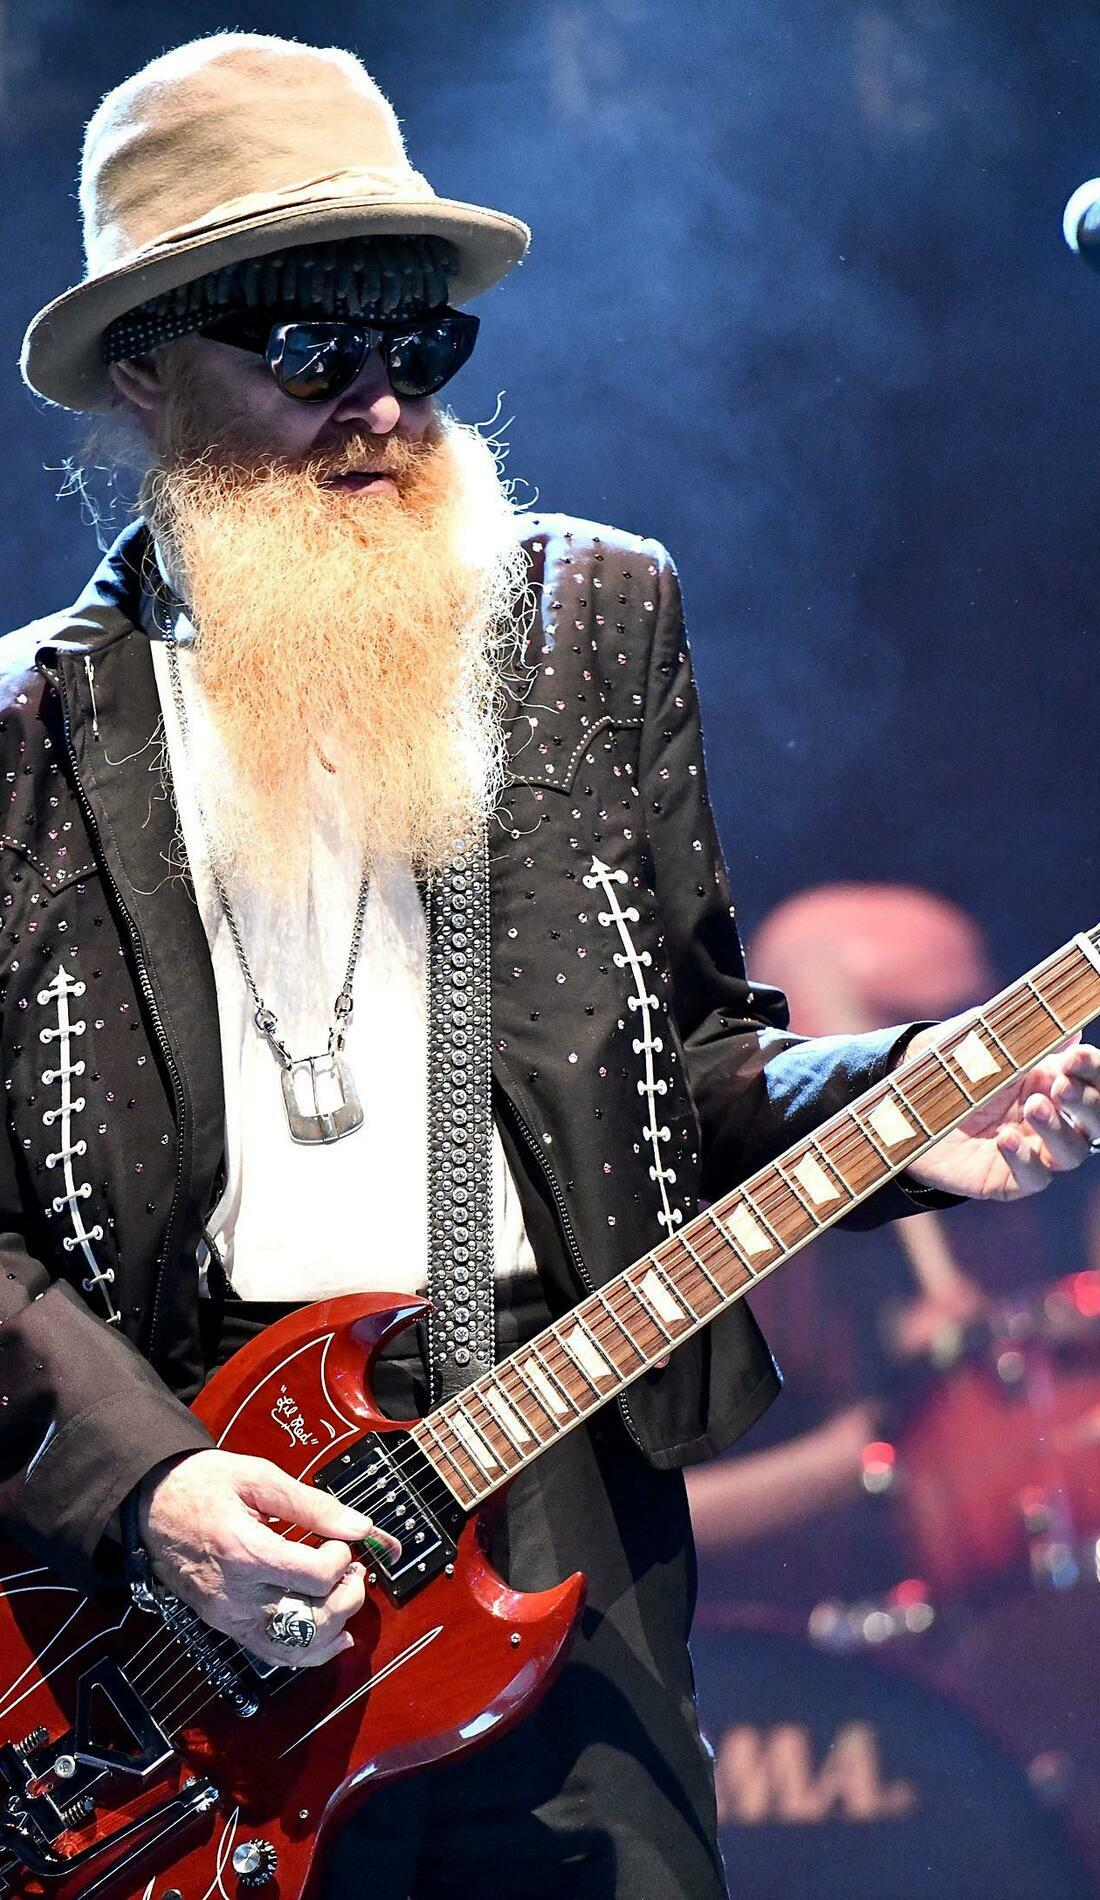 A ZZ Top live event